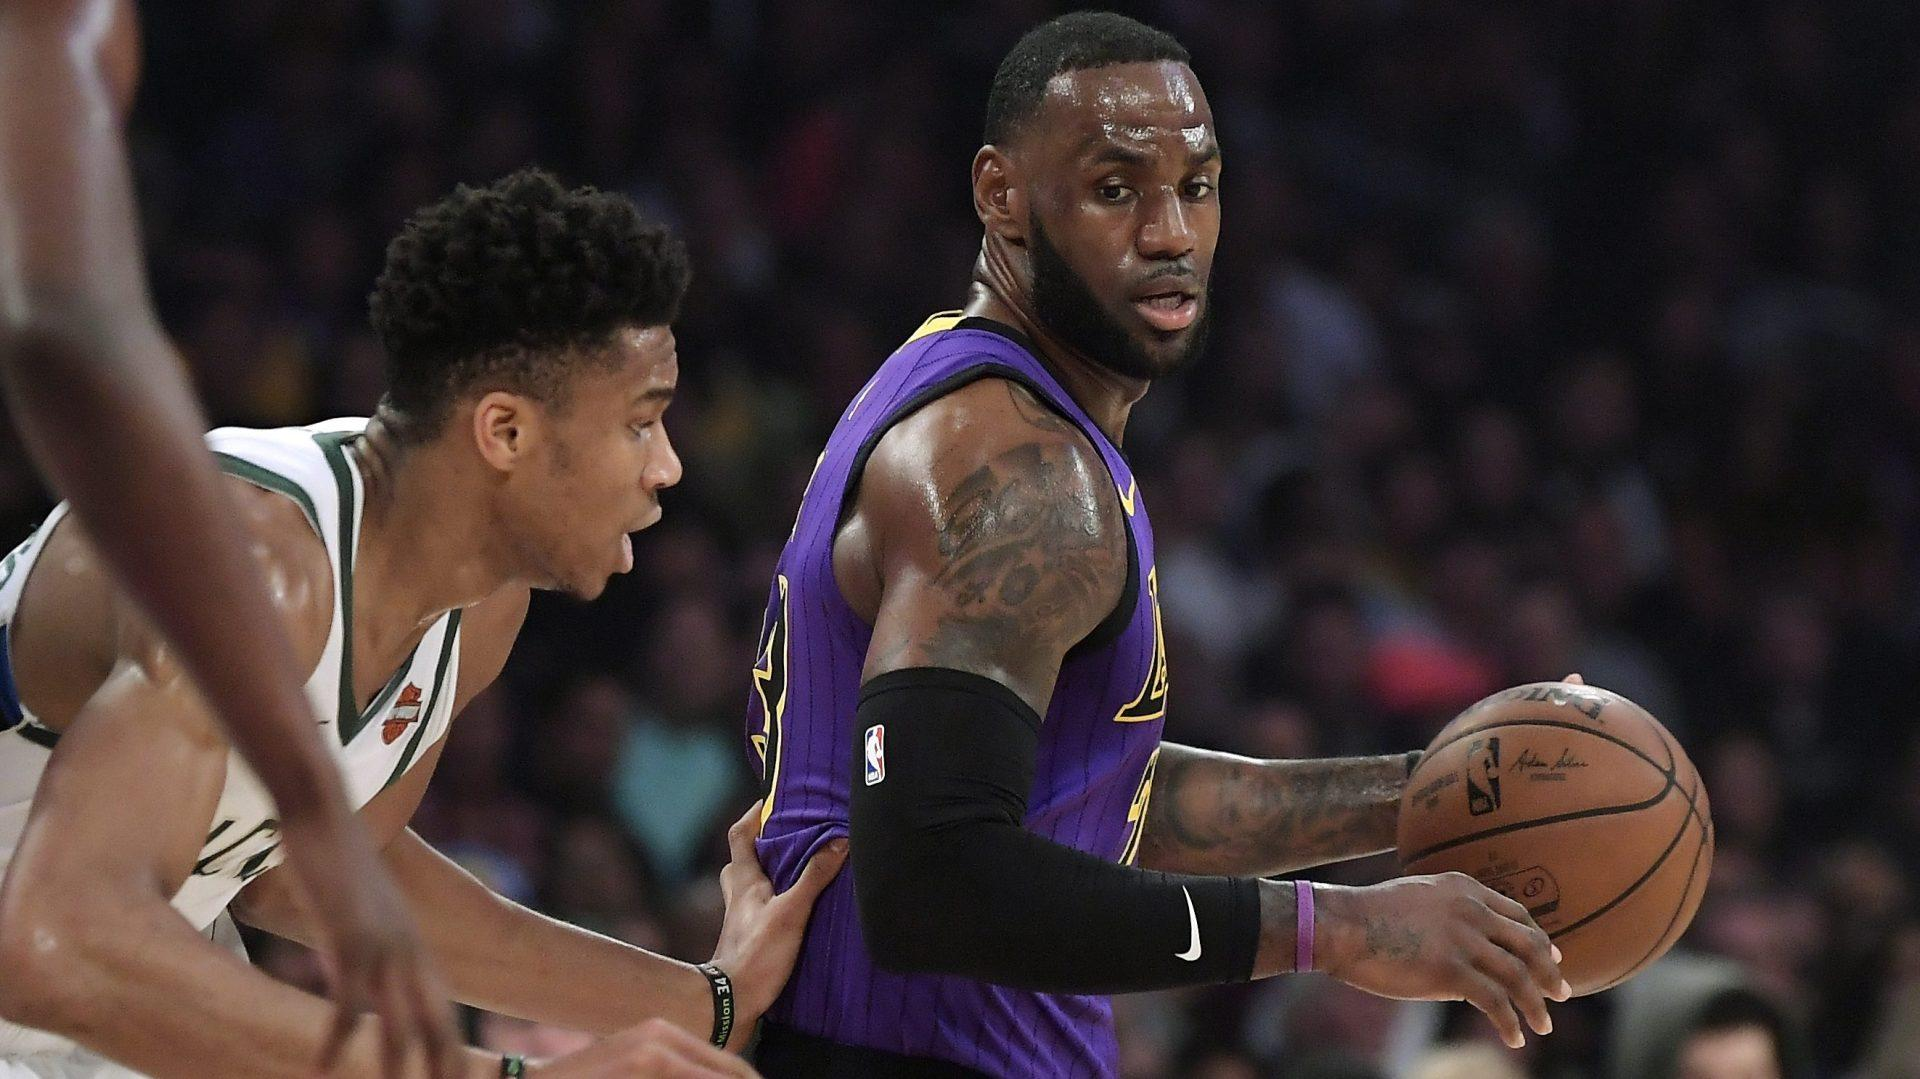 A fan paid nearly $7,000 to see LeBron and Giannis, then got neither